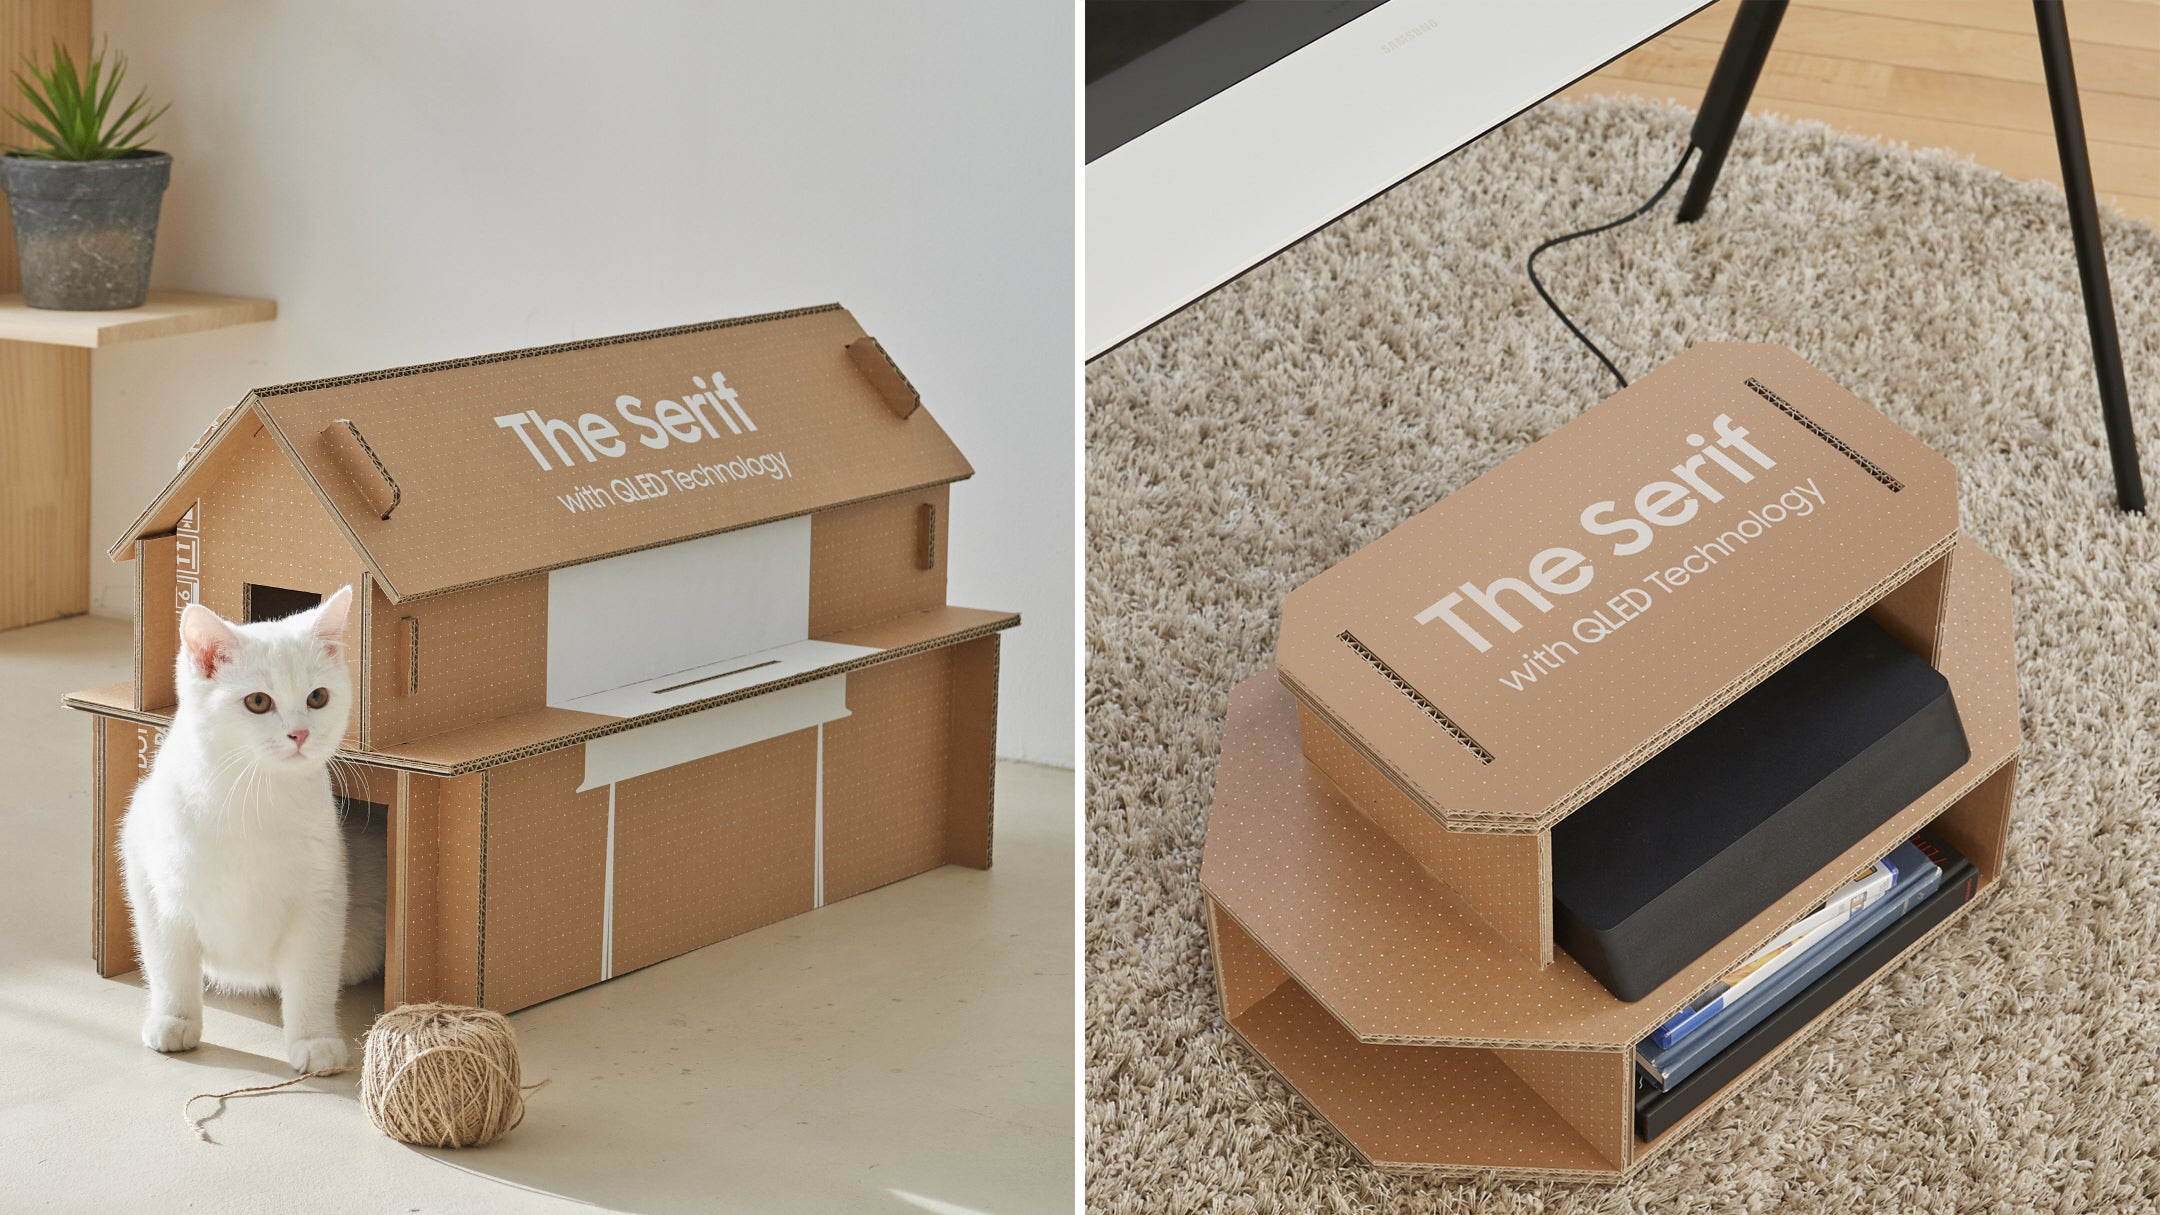 Samsung Redesigned Its TV Boxes To Be Easily Converted Into Cat Houses And Entertainment Centres